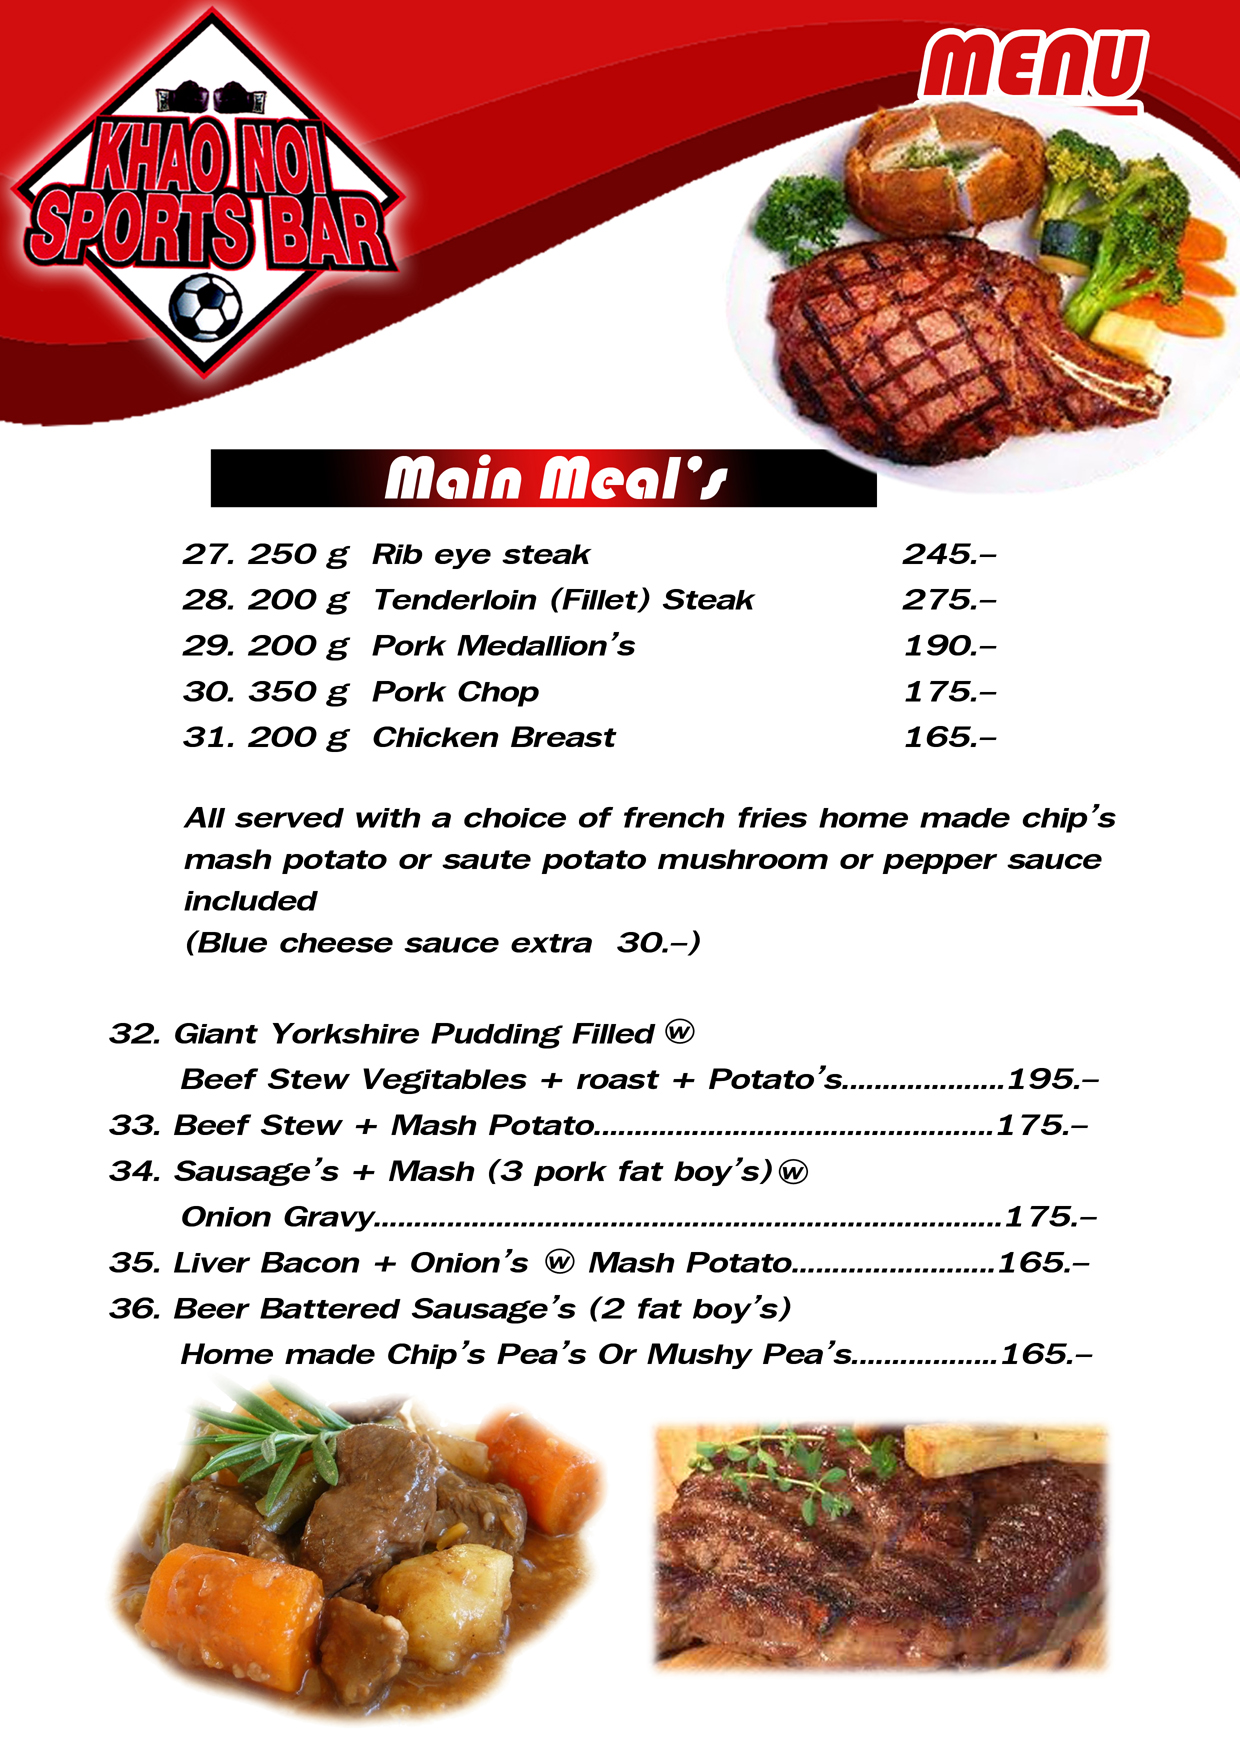 Inspire pattaya khao noi sports bar for Food bar menu